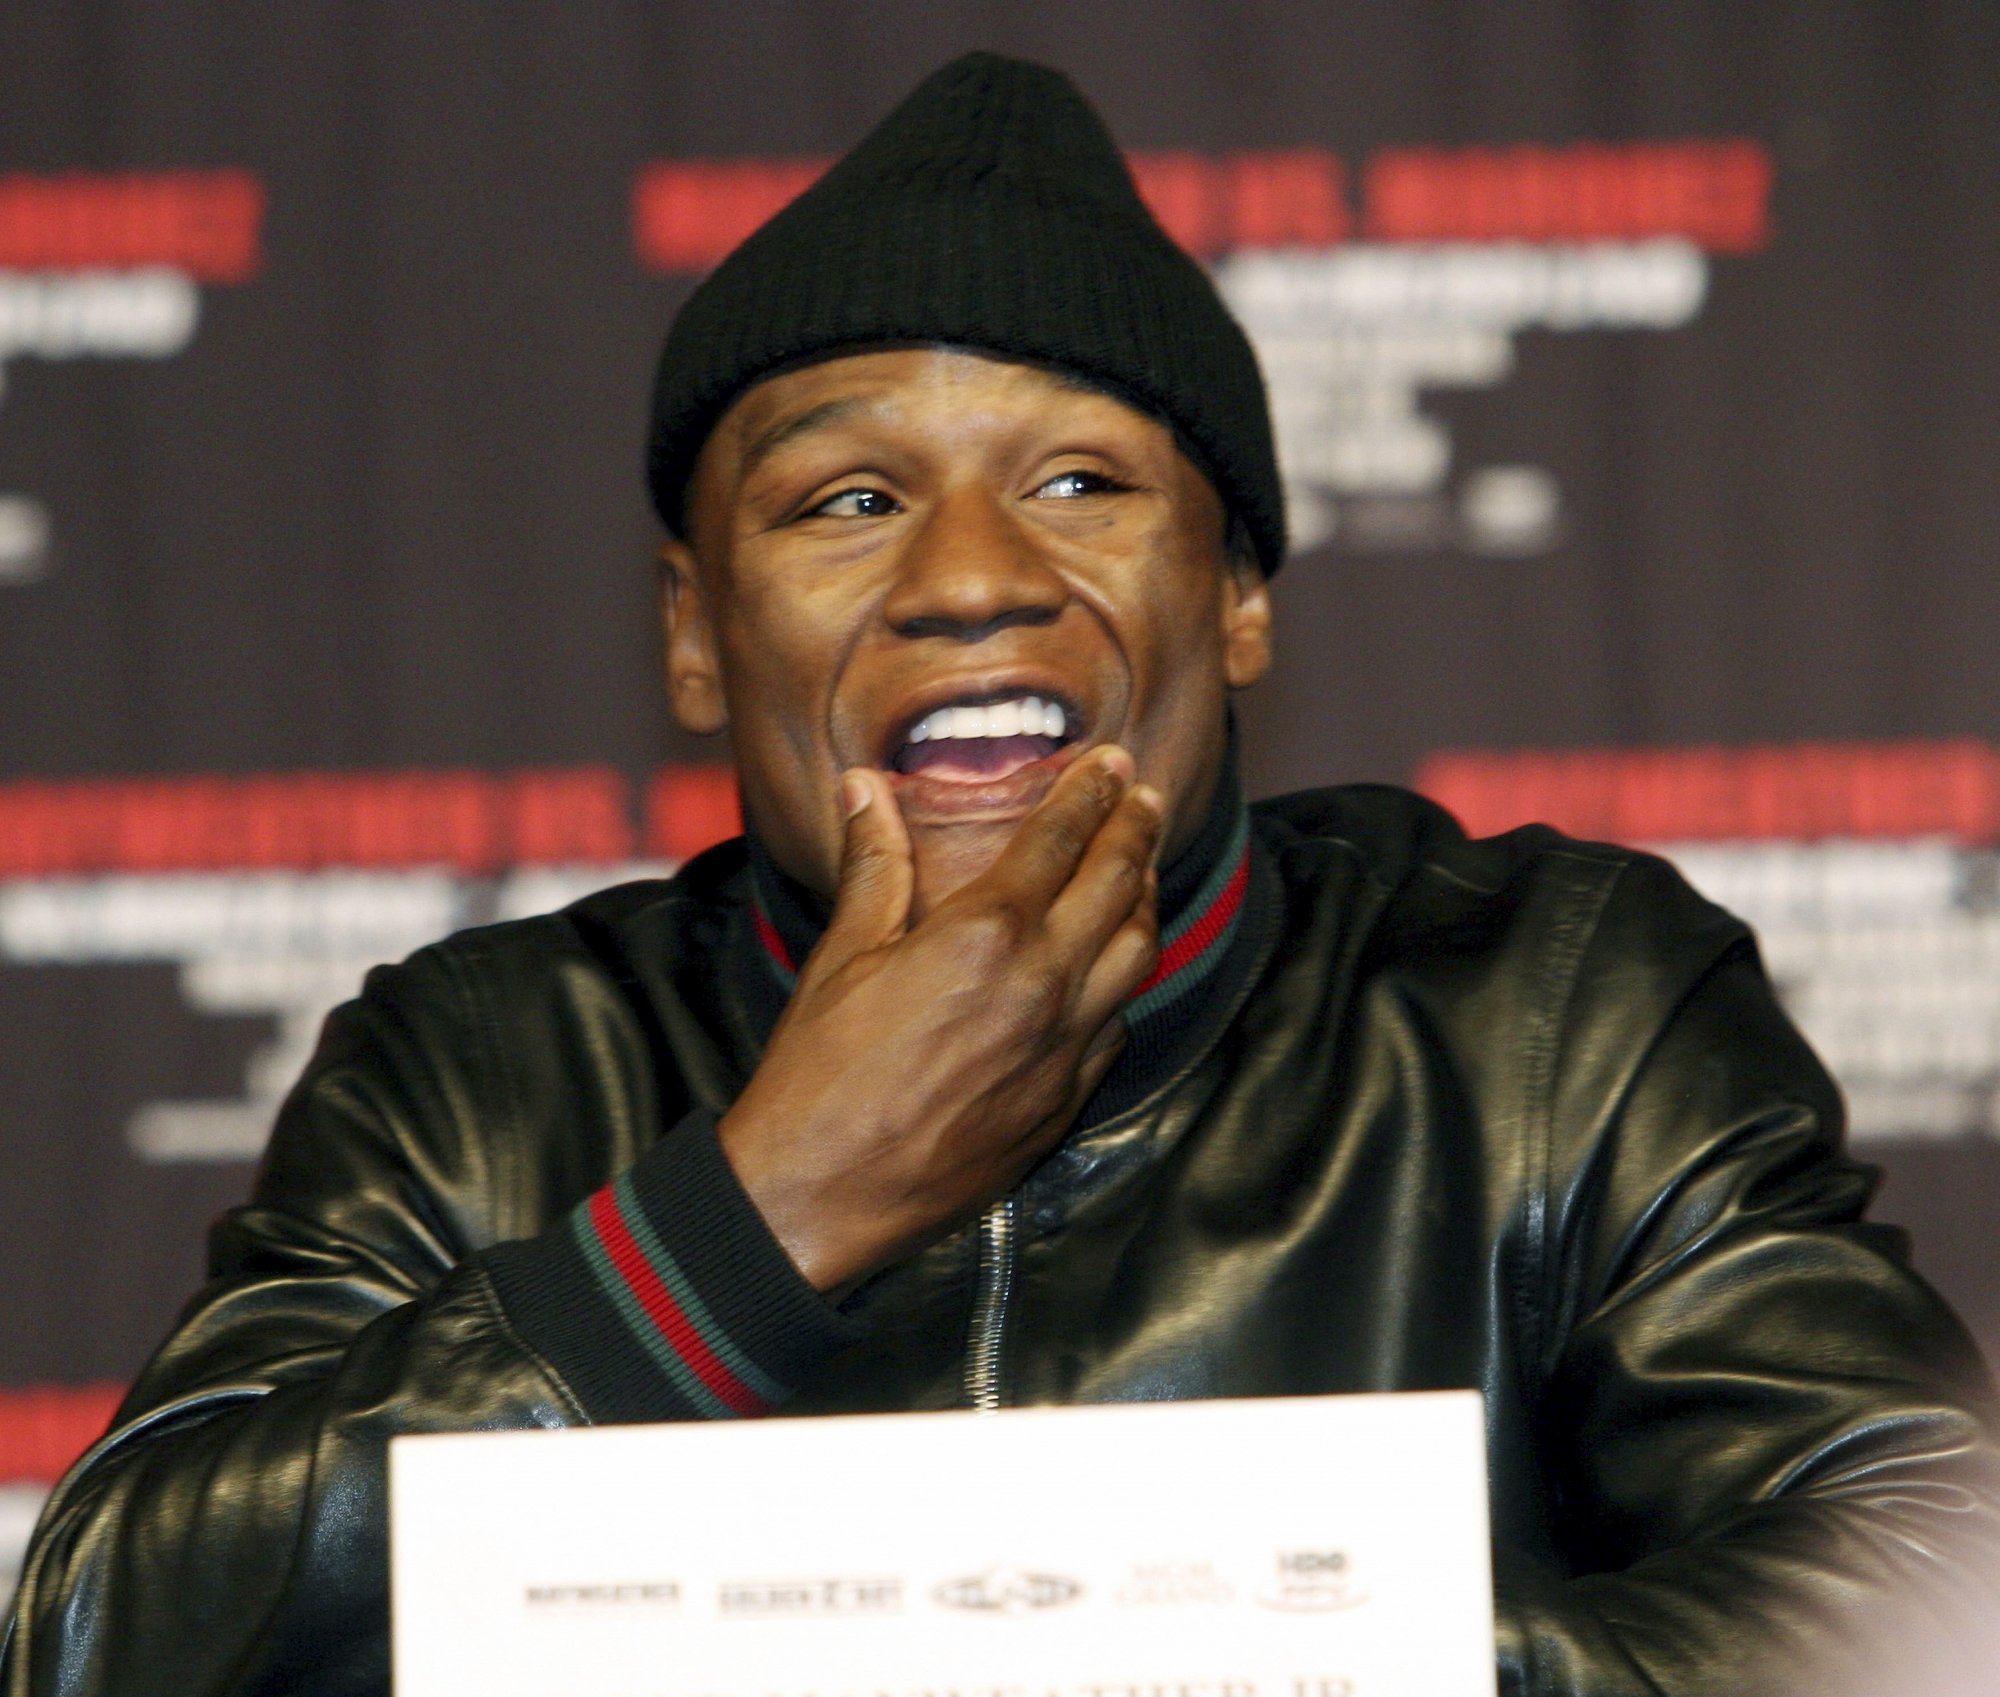 Floyd Mayweather vs. Robert Guerrero Set for May 4th